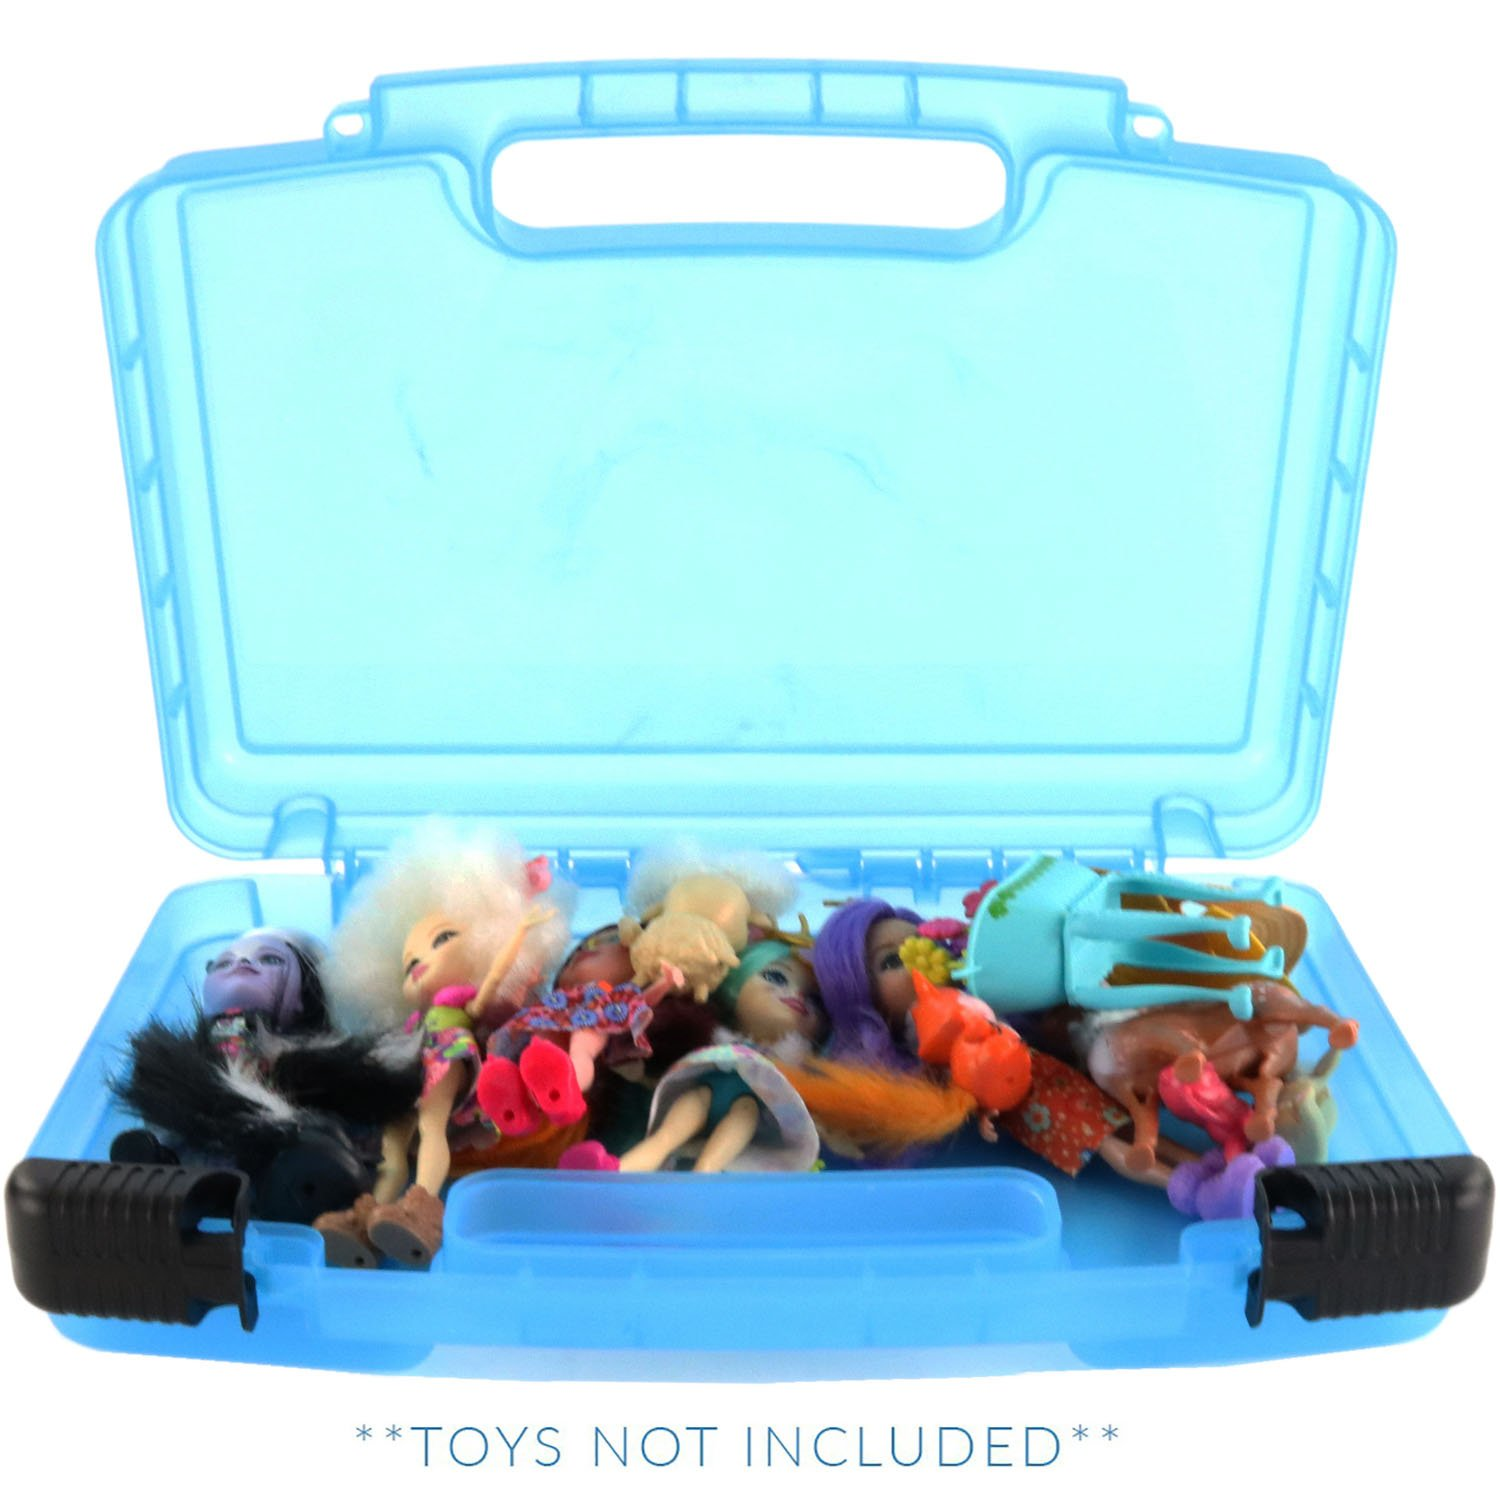 Enchantimals Case, Toy Storage Carrying Box. Figures Playset Organizer. Accessories For Kids by LMB Life Made Better LMB304